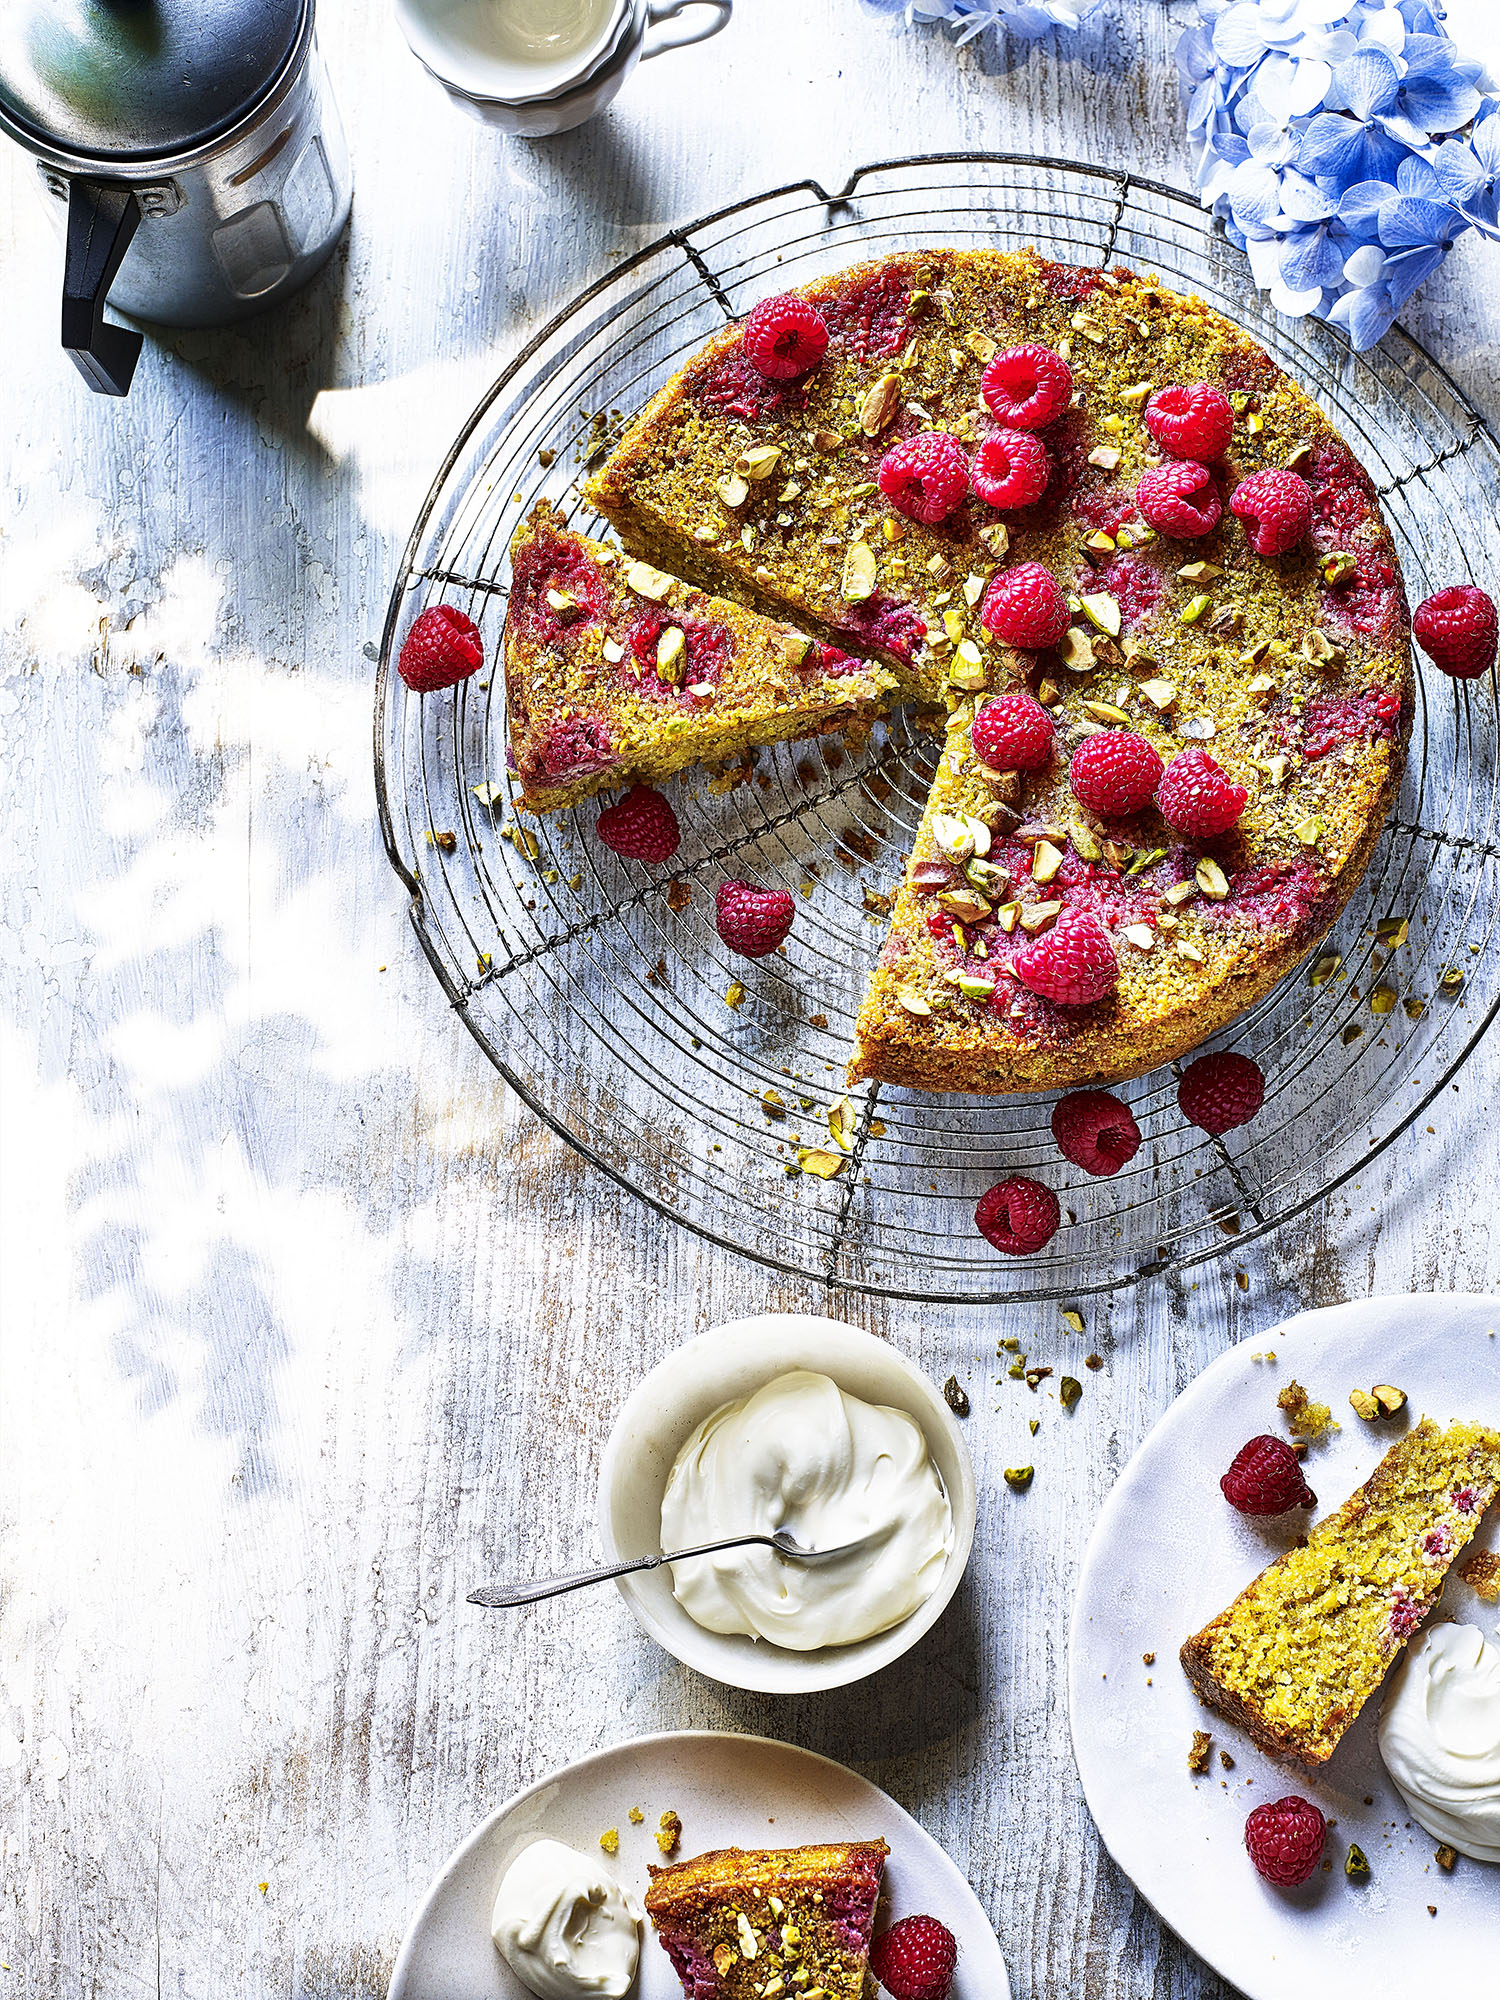 Raspberry and Pistachio Cake Photograph Kris Kirkham Prop Styling Davina Perkins